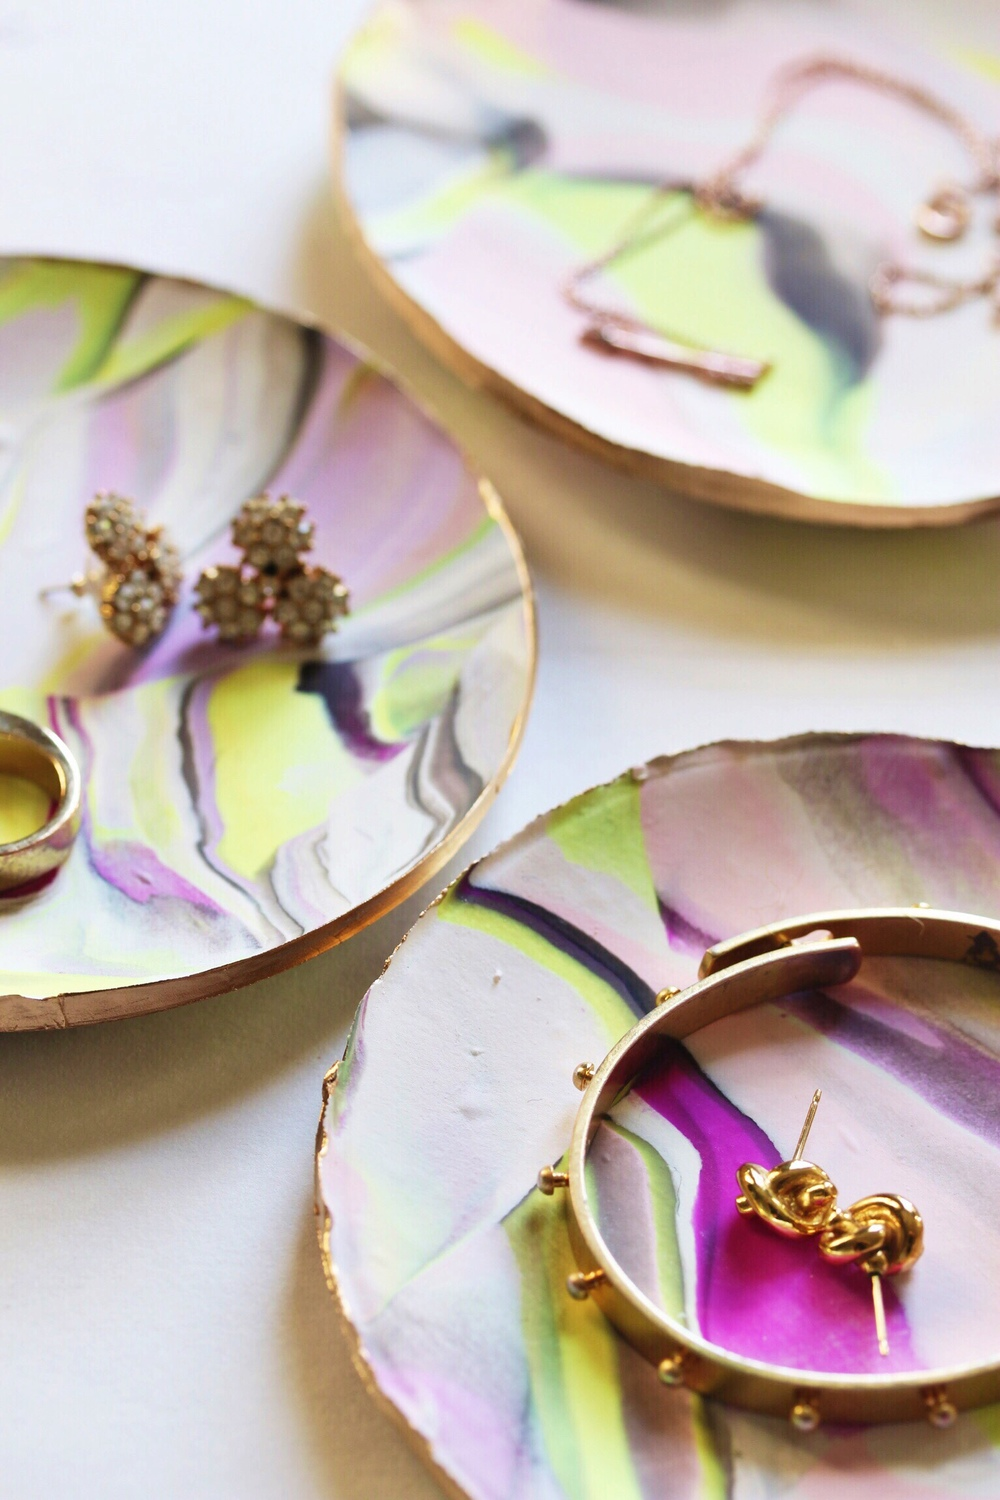 DIY marbled clay jewelry dishes - The Pastiche